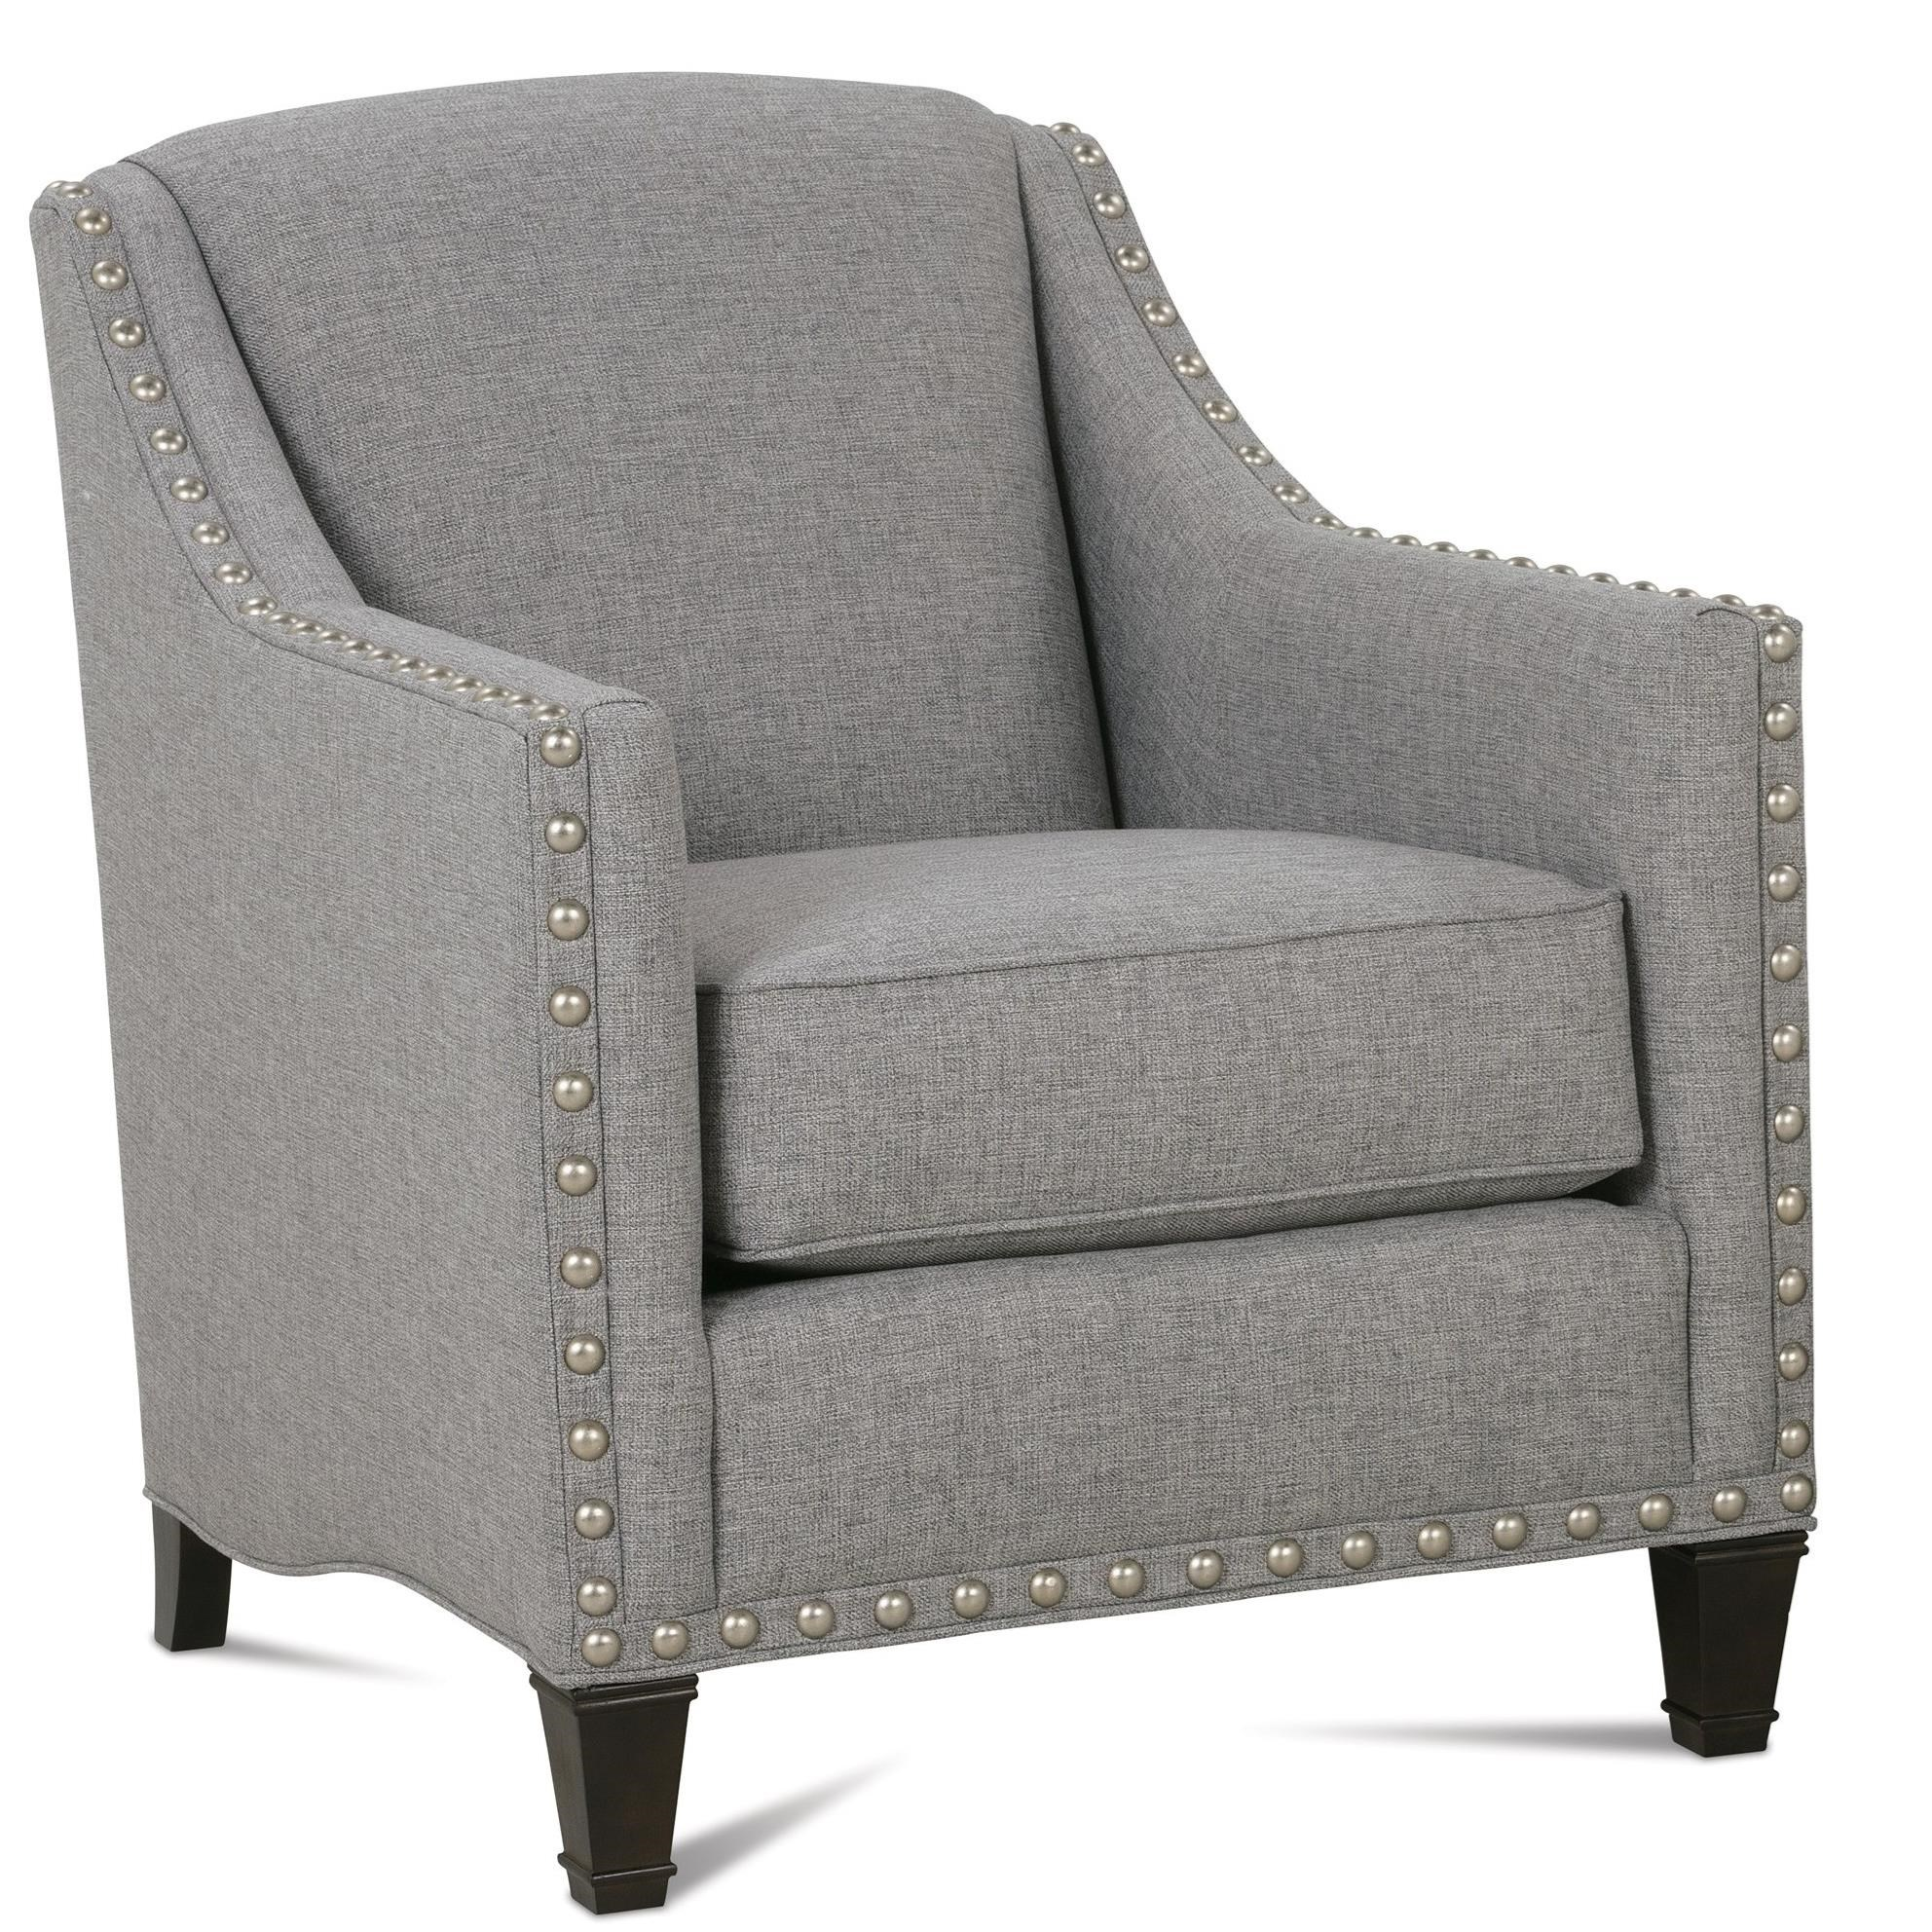 upholstered chair with nailhead trim rattan basket rowe rockford traditional